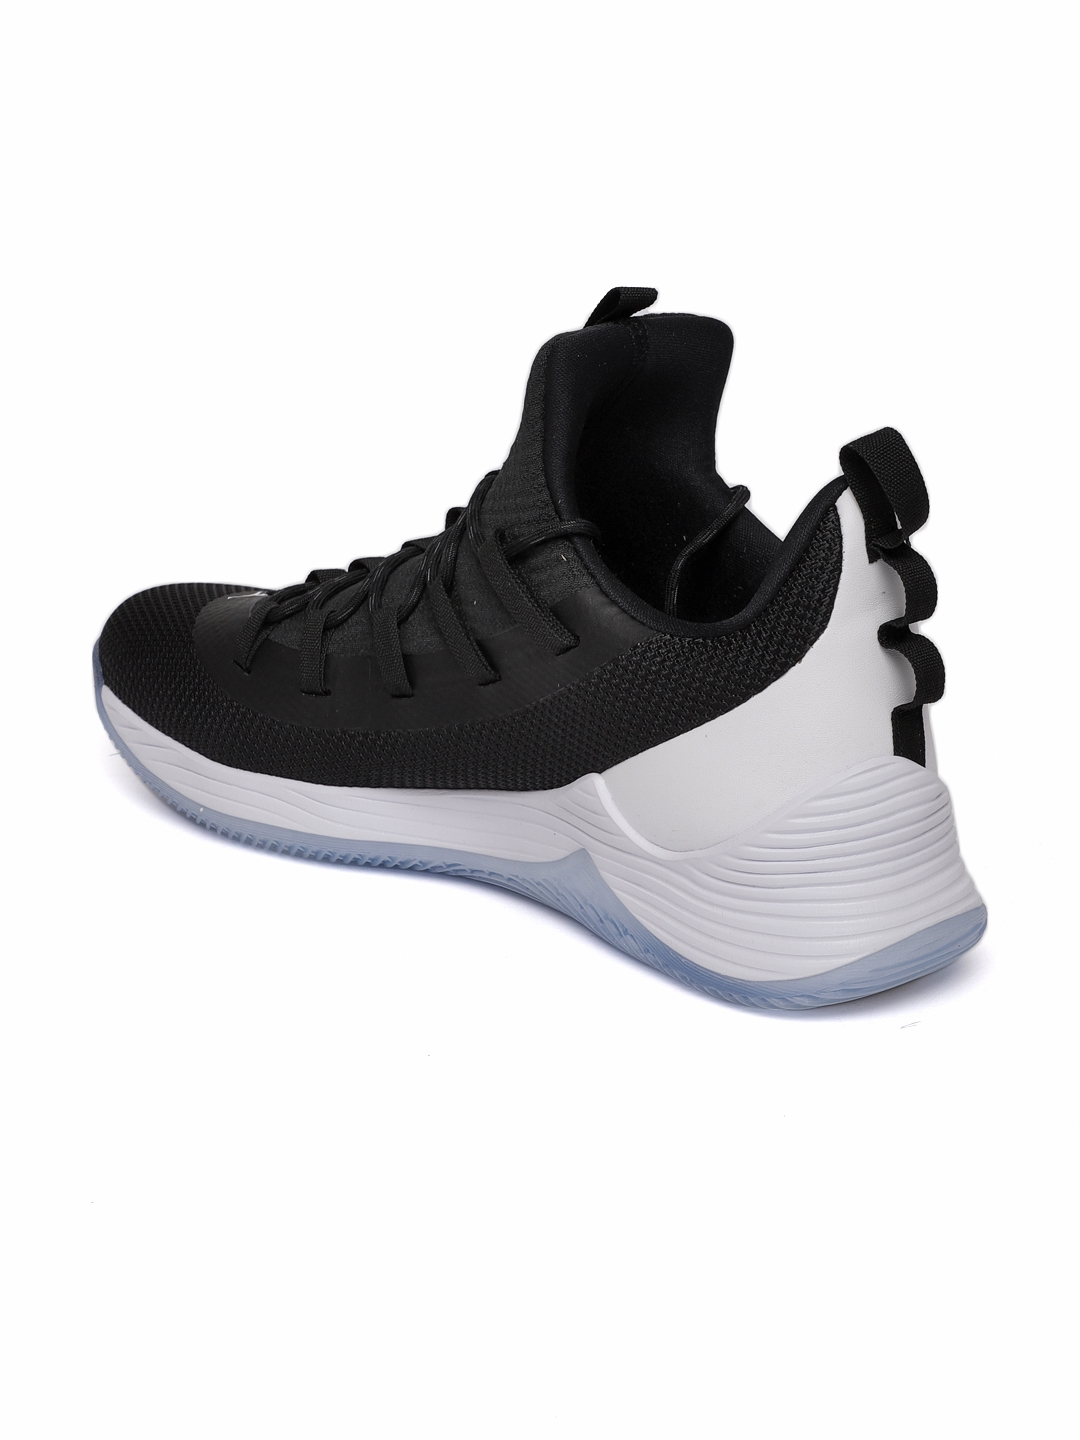 Buy Nike Men Black   White Jordan Ultra Fly 2 Low Basketball Shoes ... a3426467d